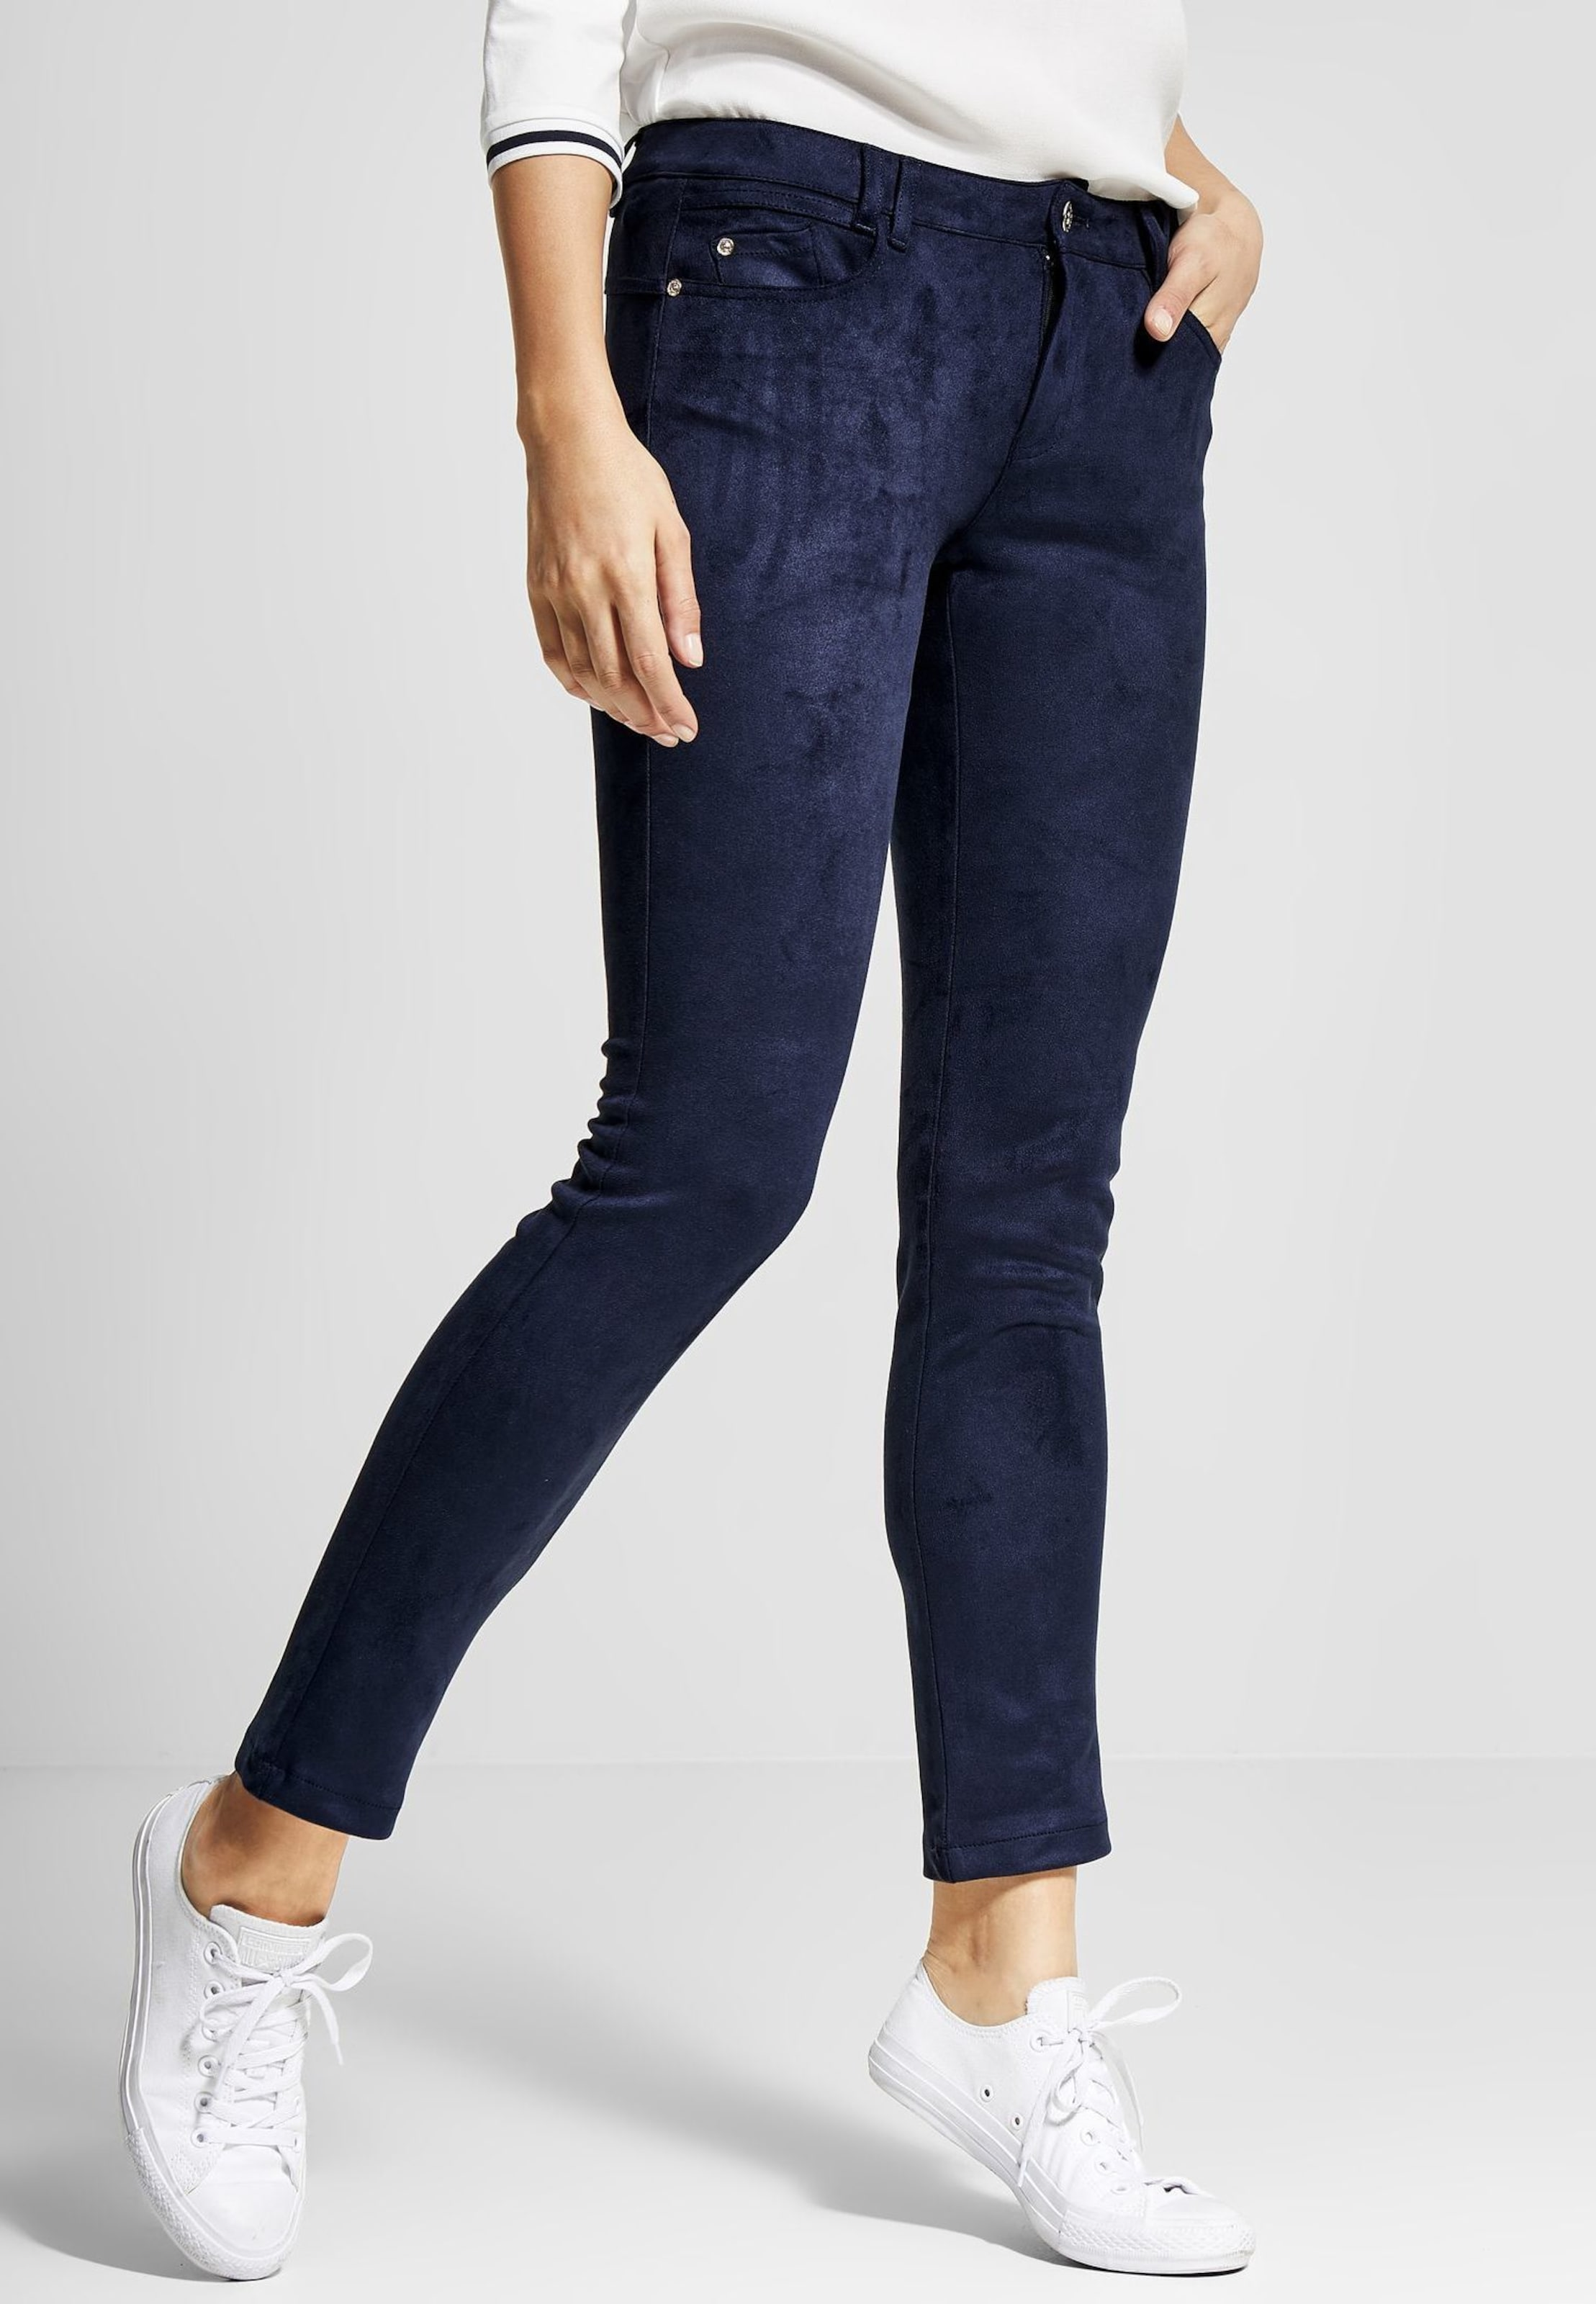 Street 'york' Bleu One Pantalon En b6If7vYymg